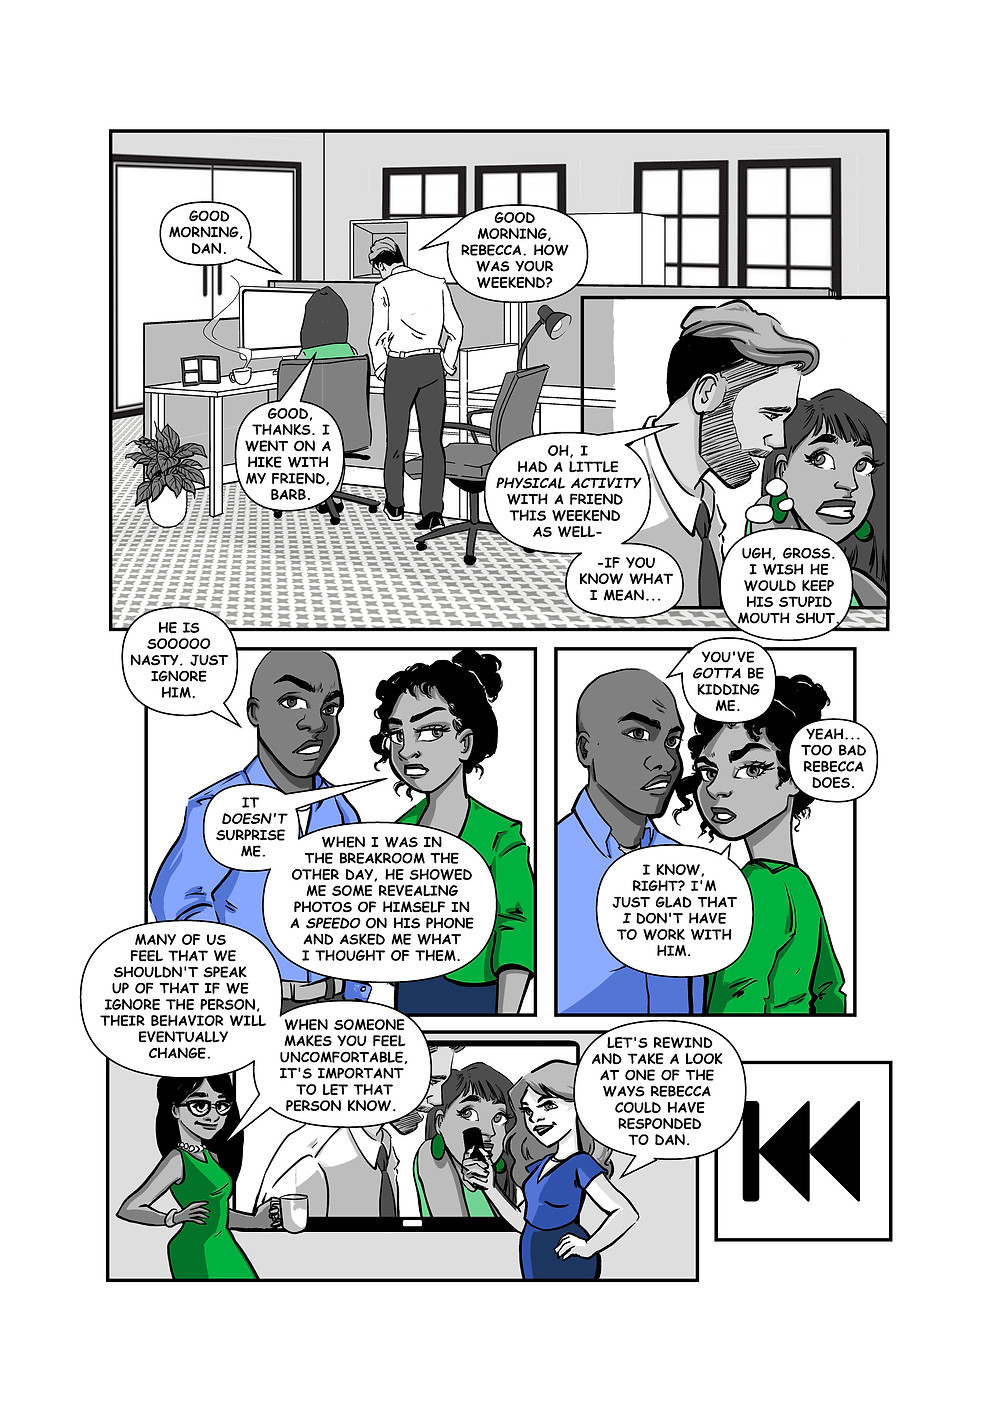 Define the Line first page of workplace harassment training comic book